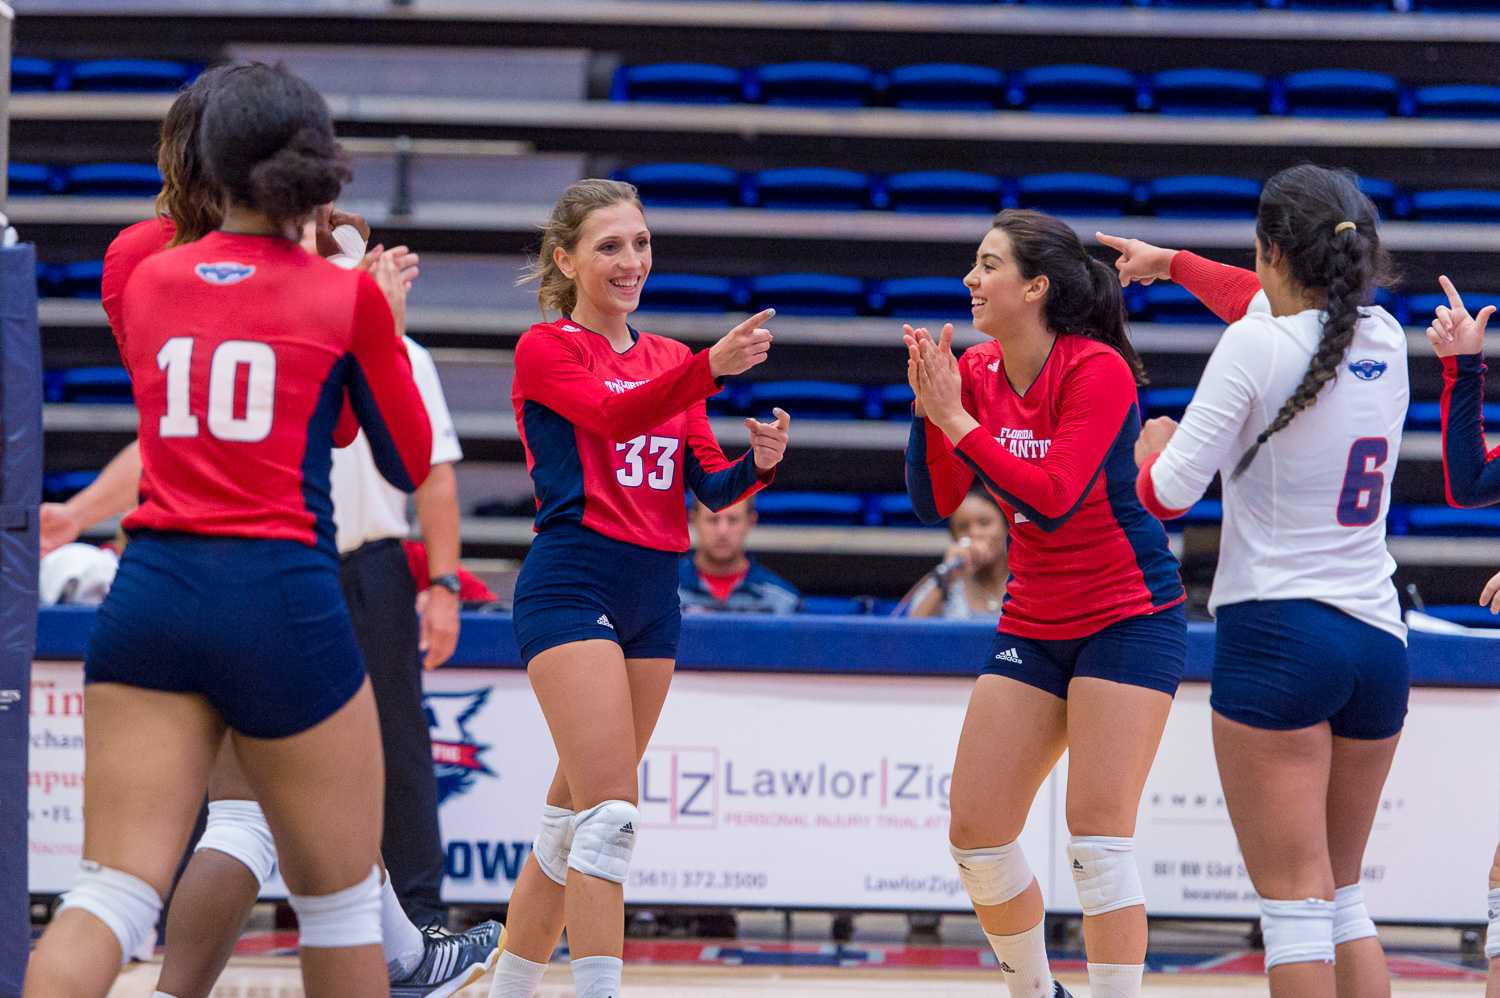 The Owl's celebrate after a successful volley against Stetson on Friday night. Max Jackson | Staff Photographer